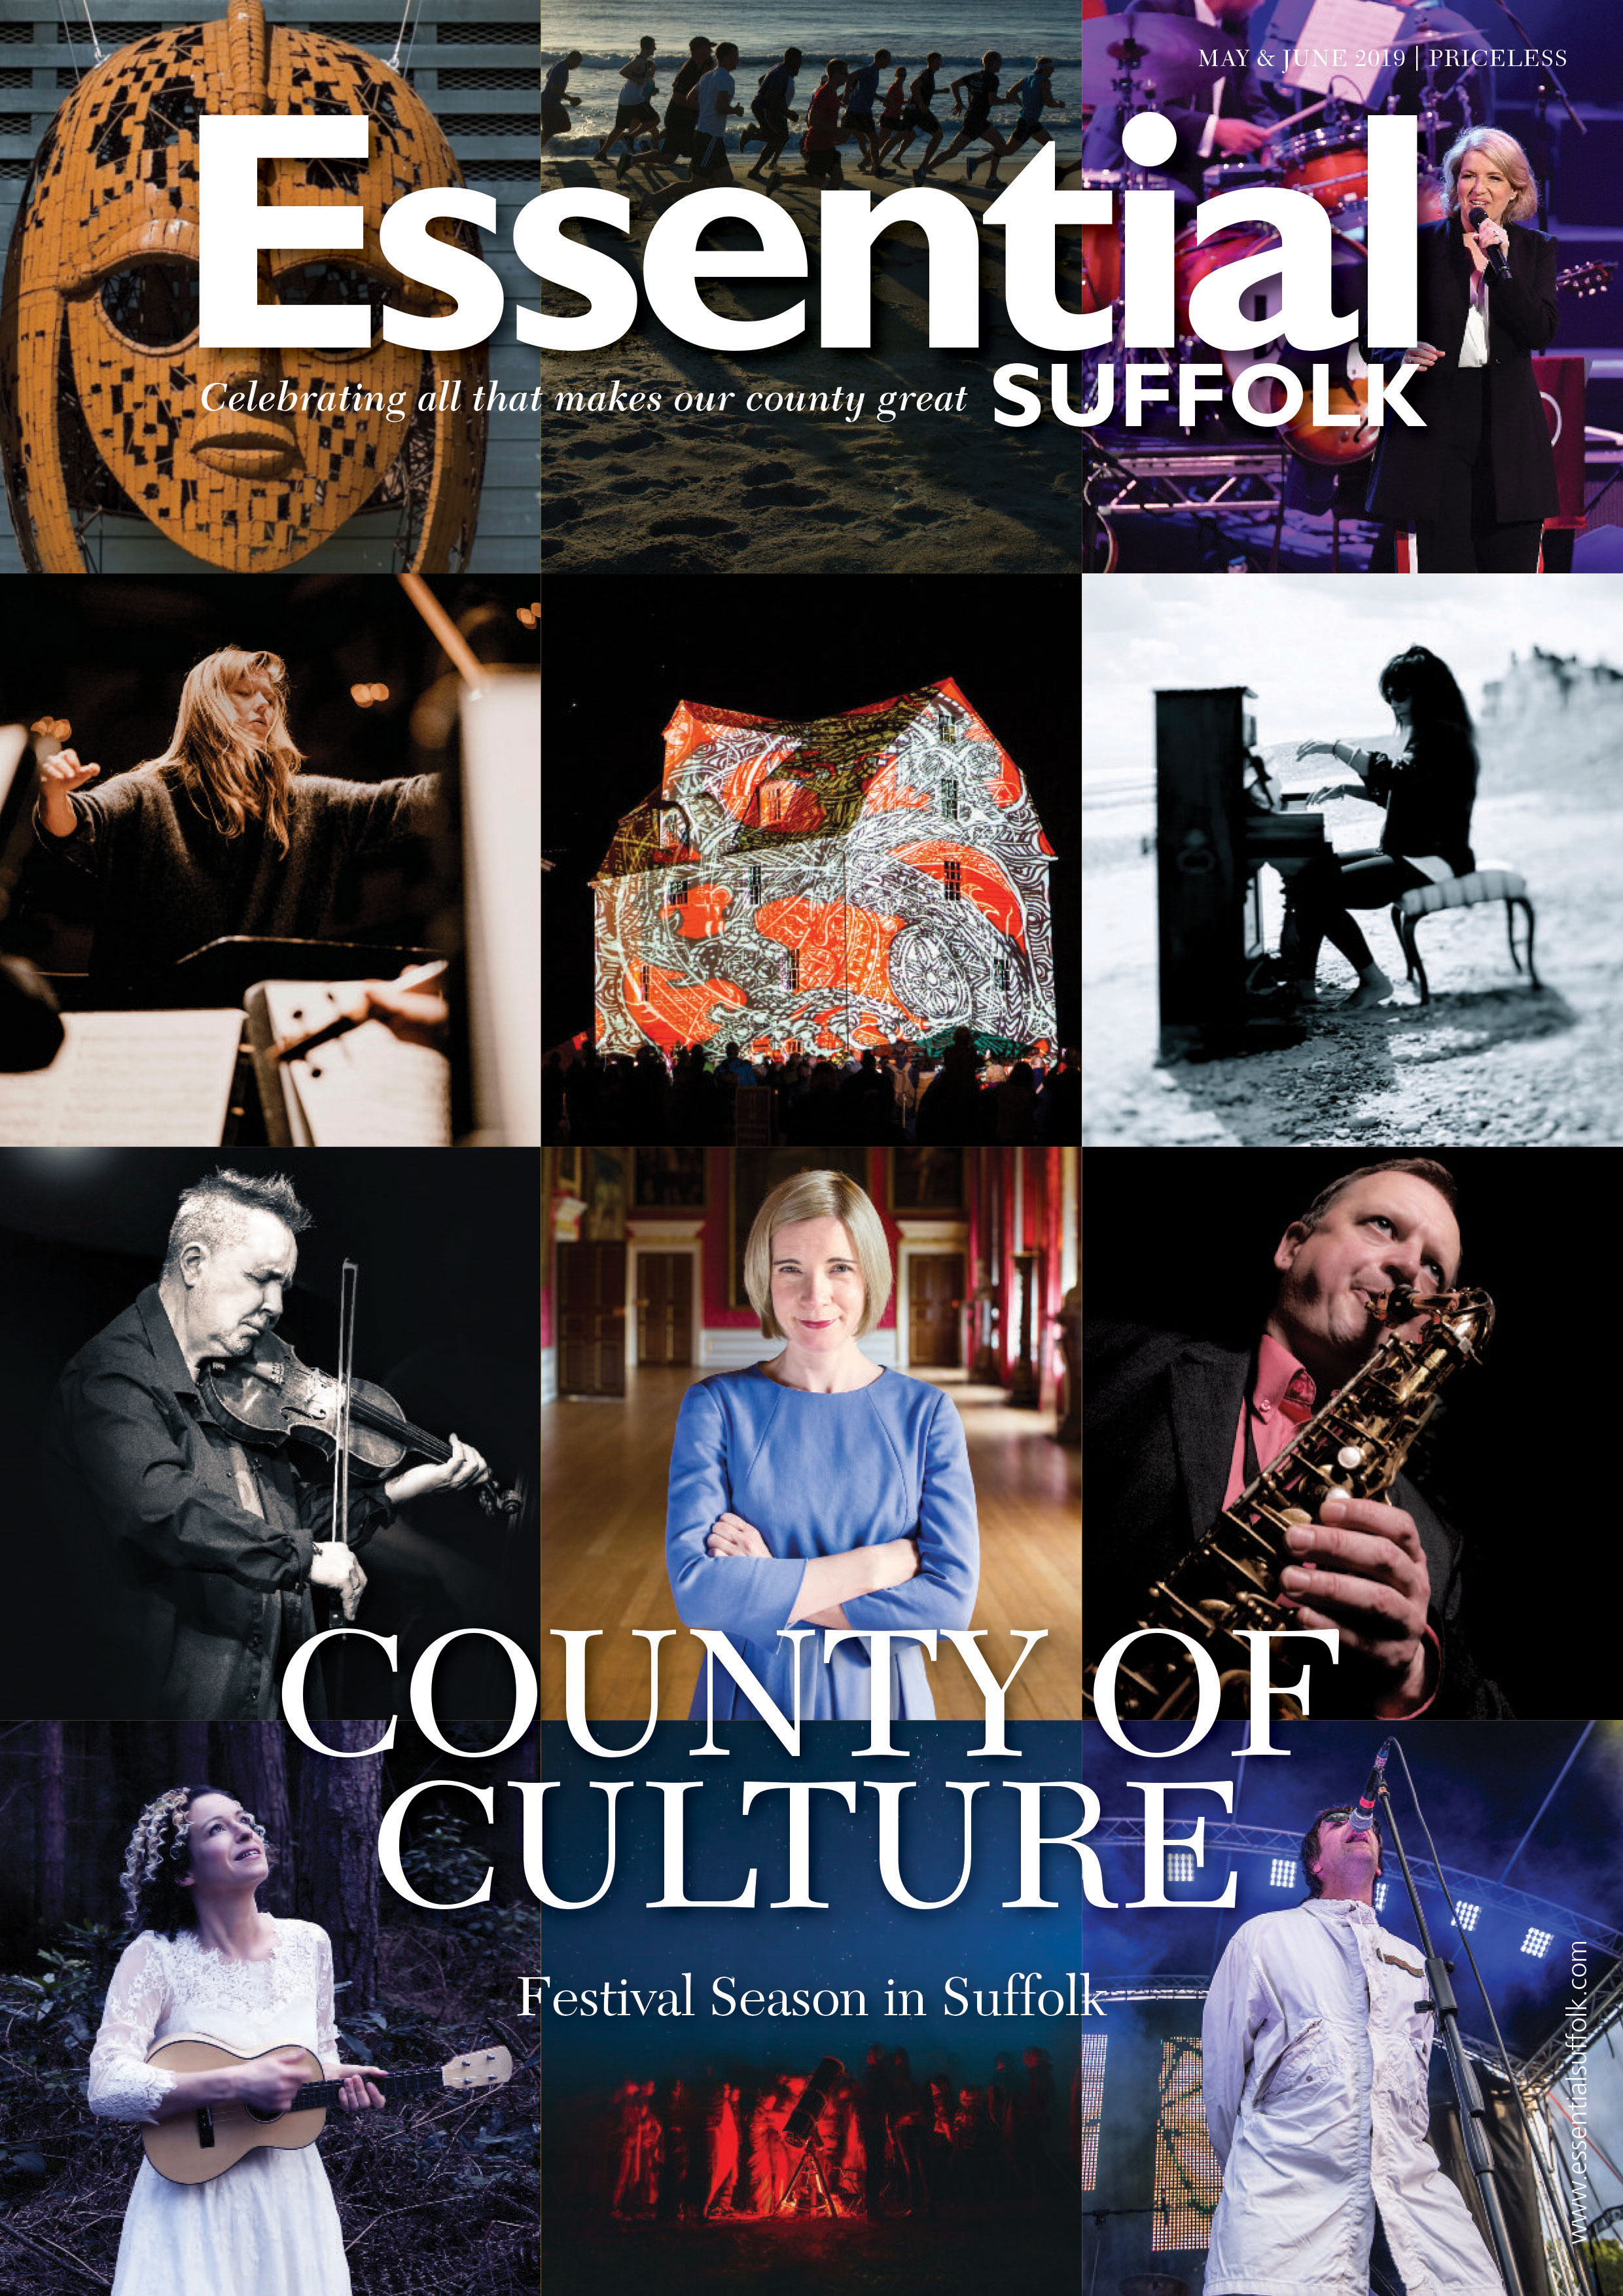 Essential-Suffolk-May-and-June-2019-cover.jpg